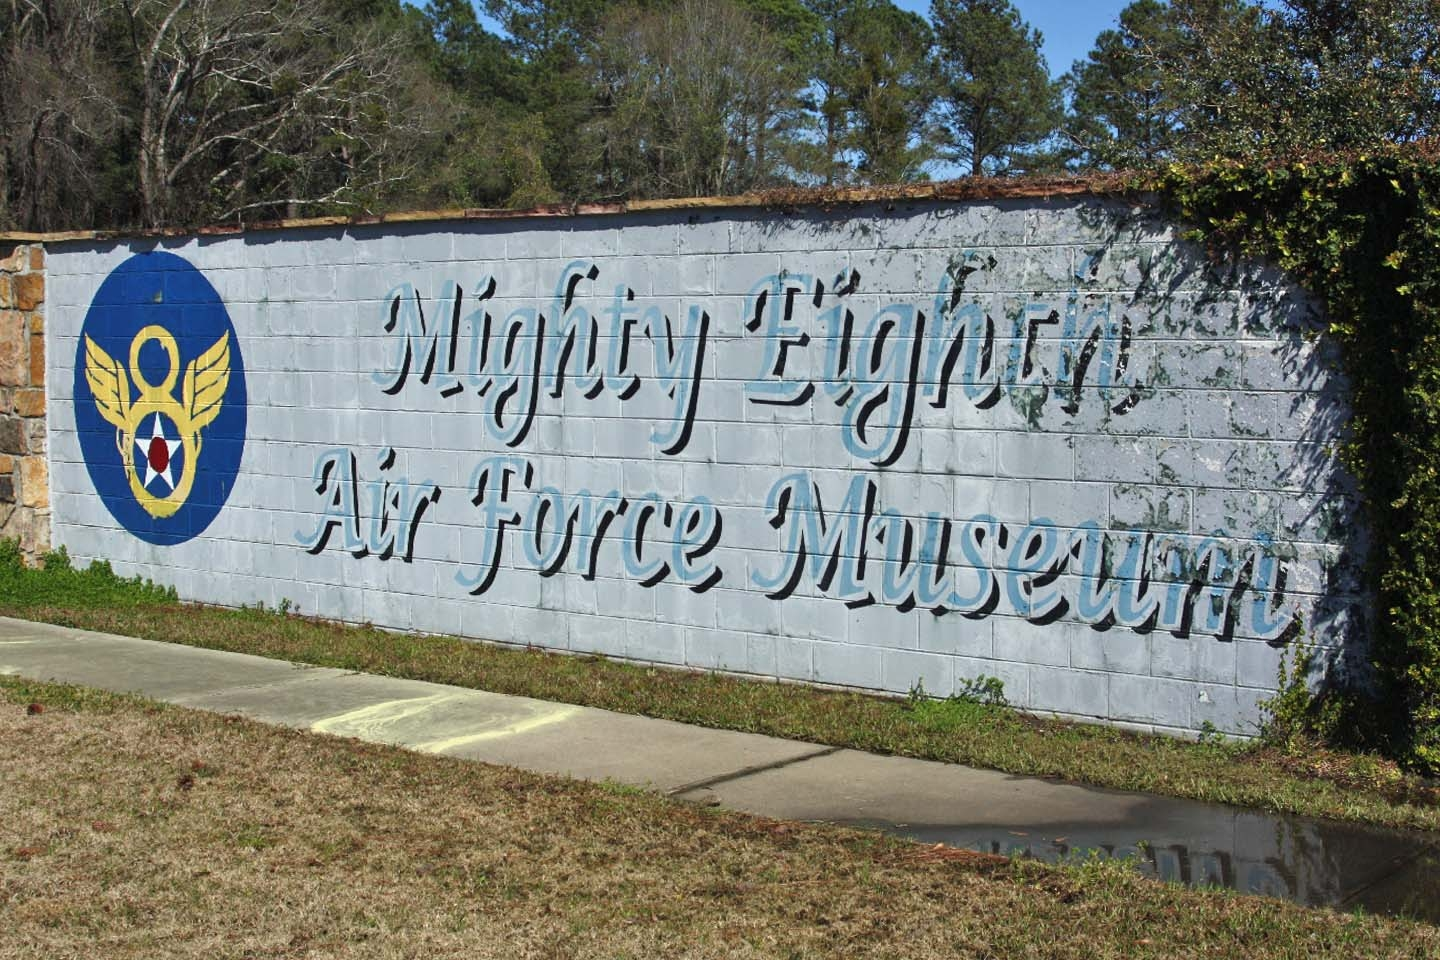 Blitzing Betsy Marker at the Mighty Eighth Air Force Museum